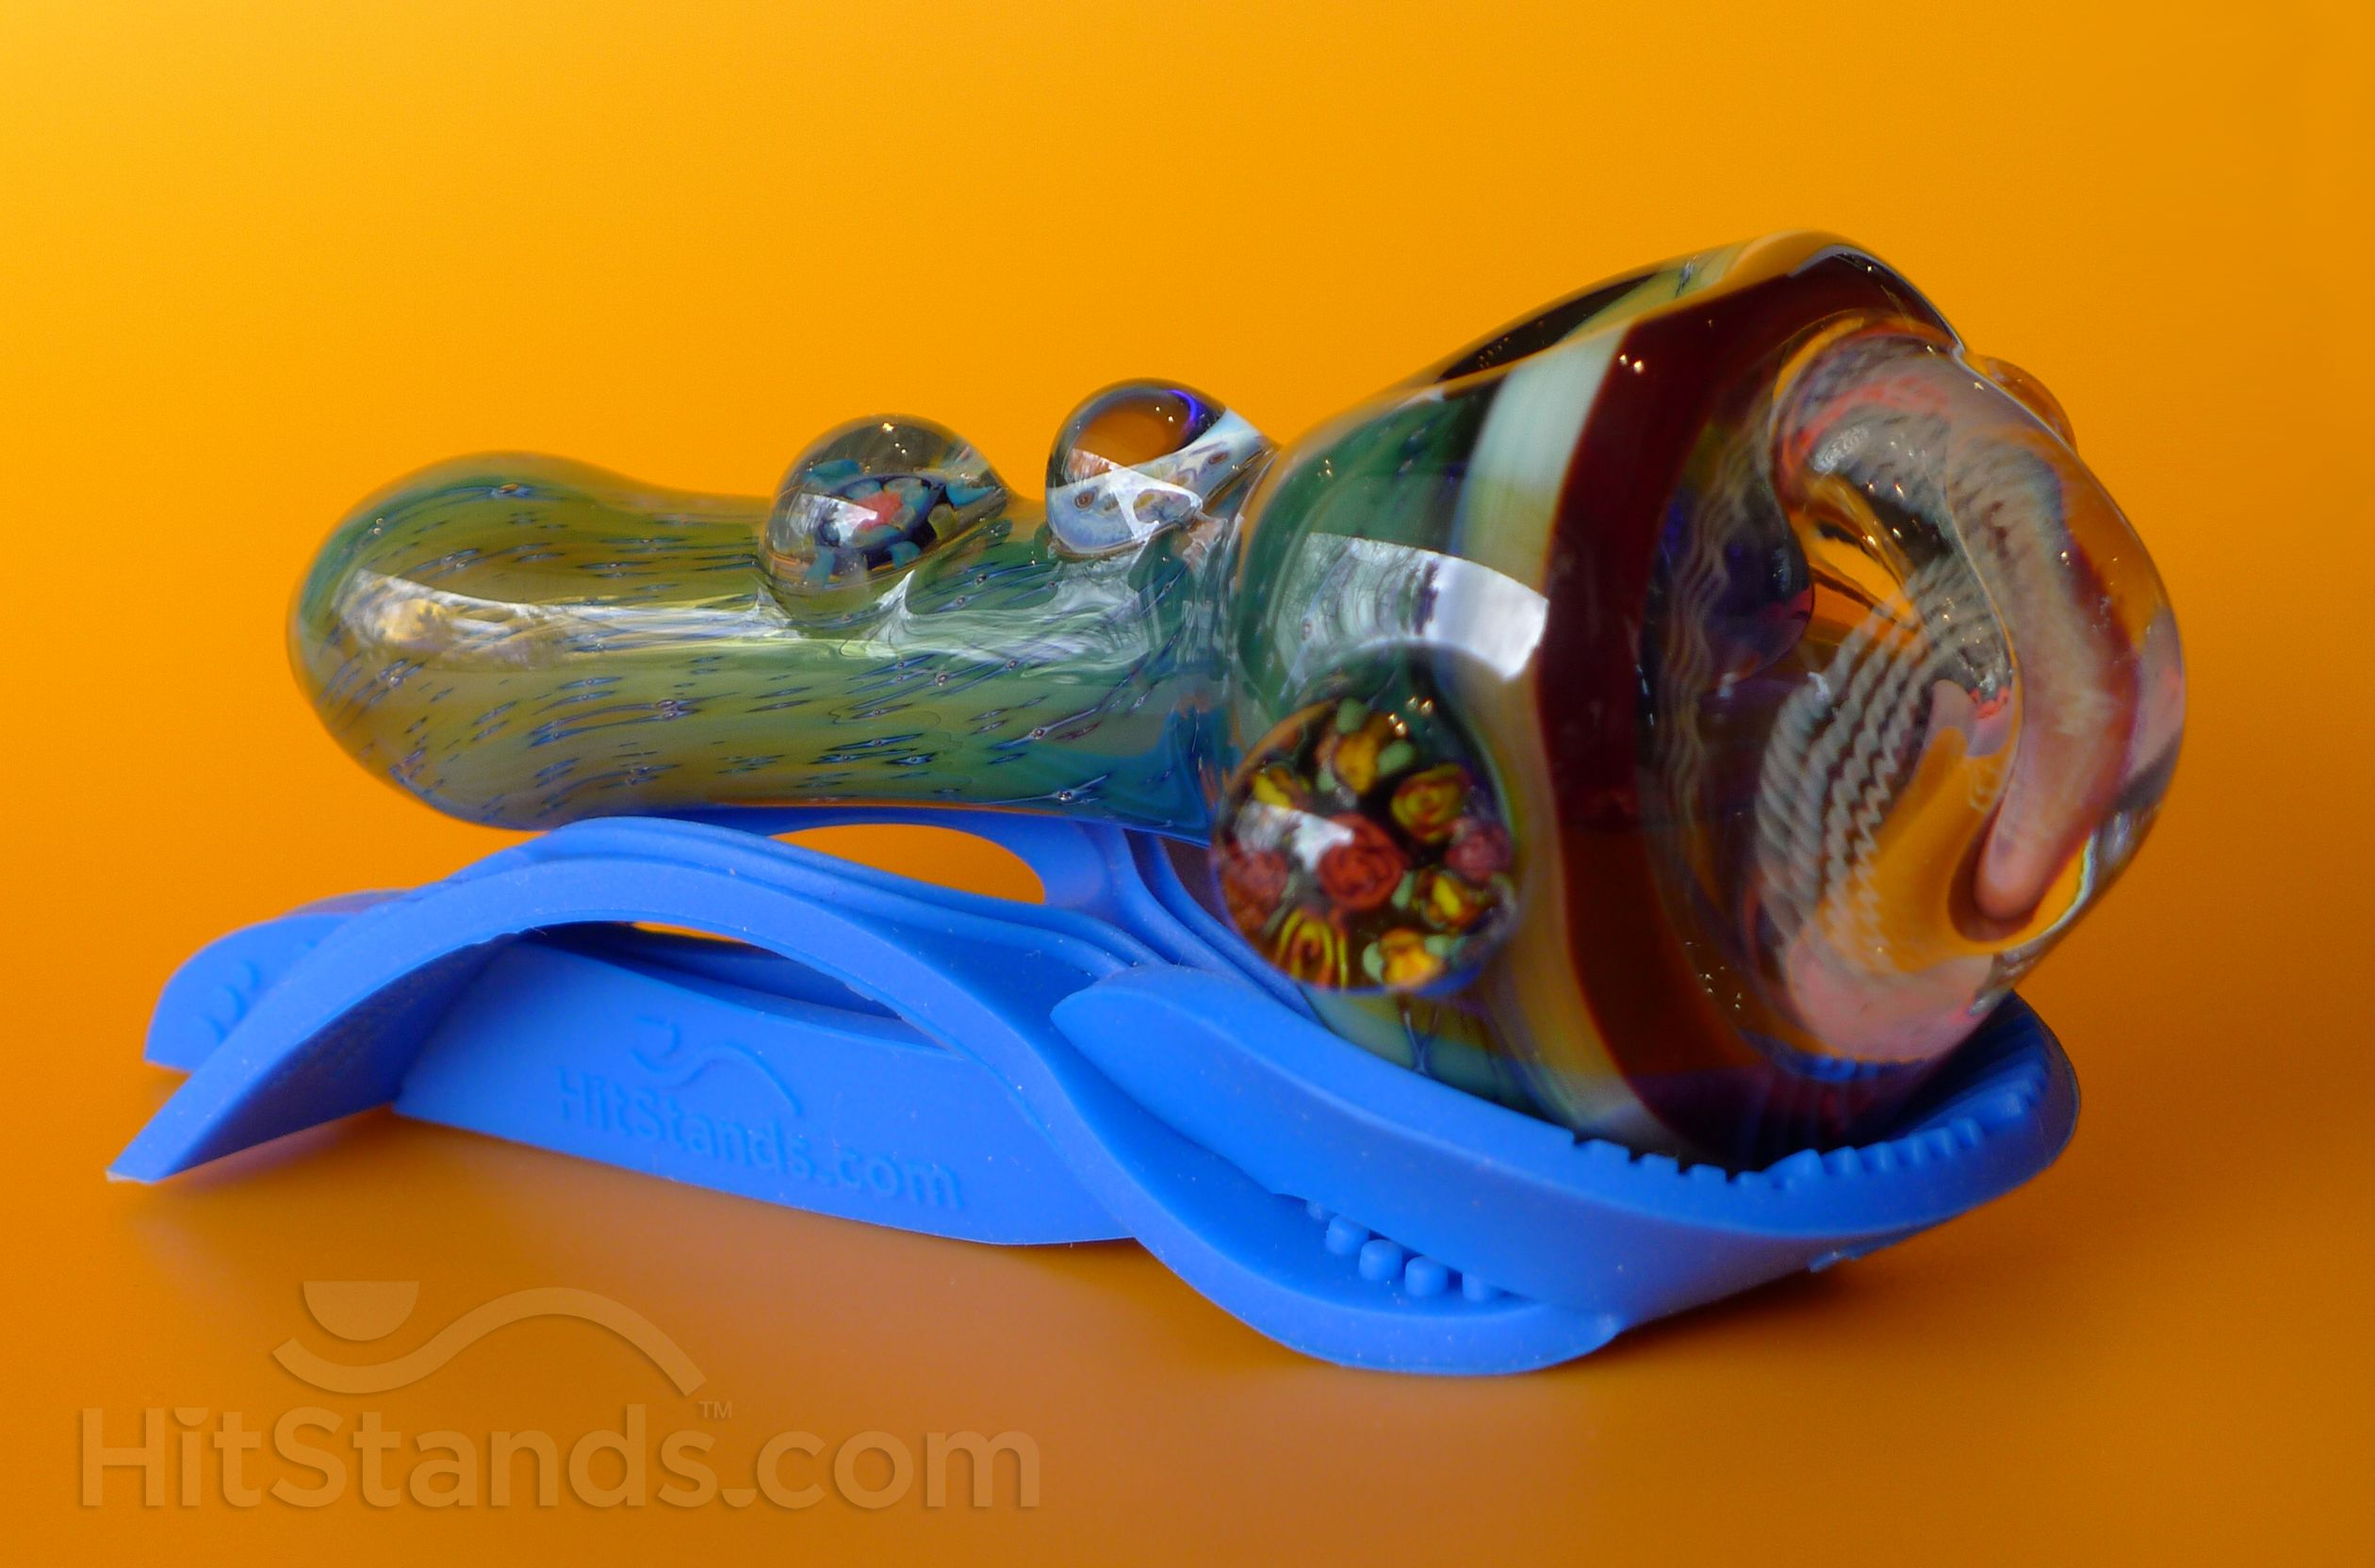 Glass pipe on a blue HitStands. HitStands.com